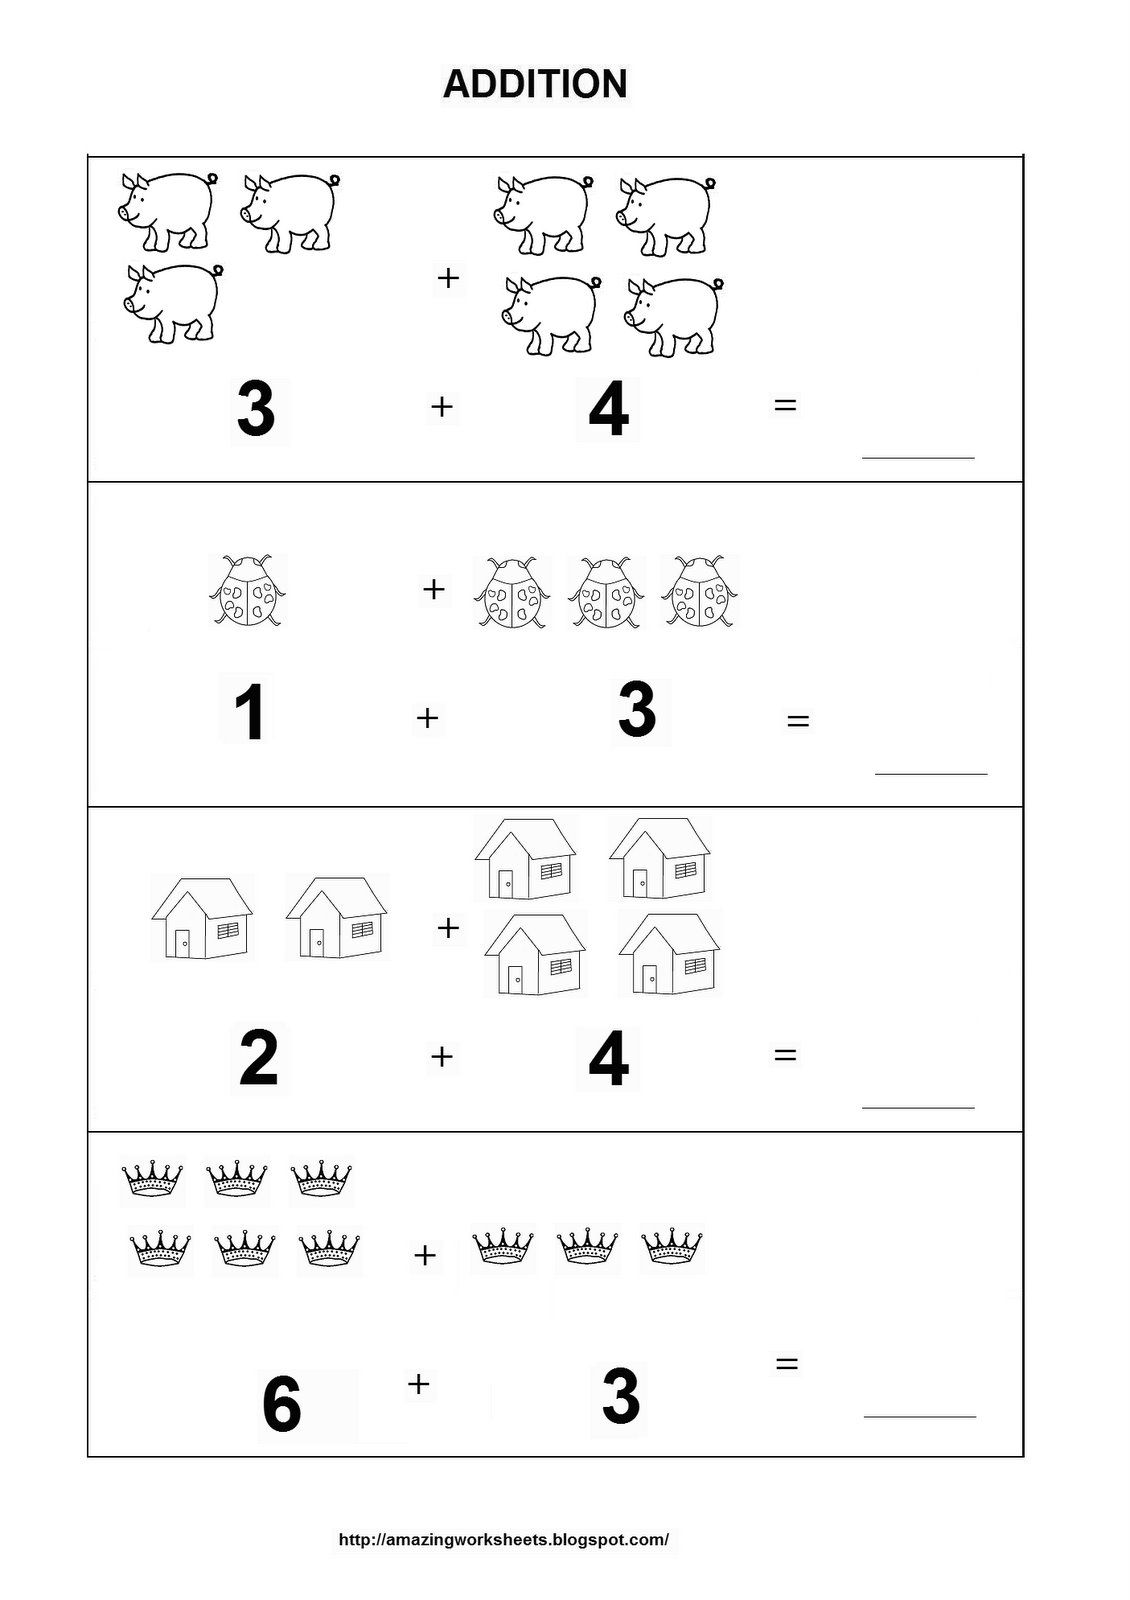 math worksheet : addition worksheet  homeschooling addition  pinterest  : Free Kindergarten Addition Worksheets With Pictures